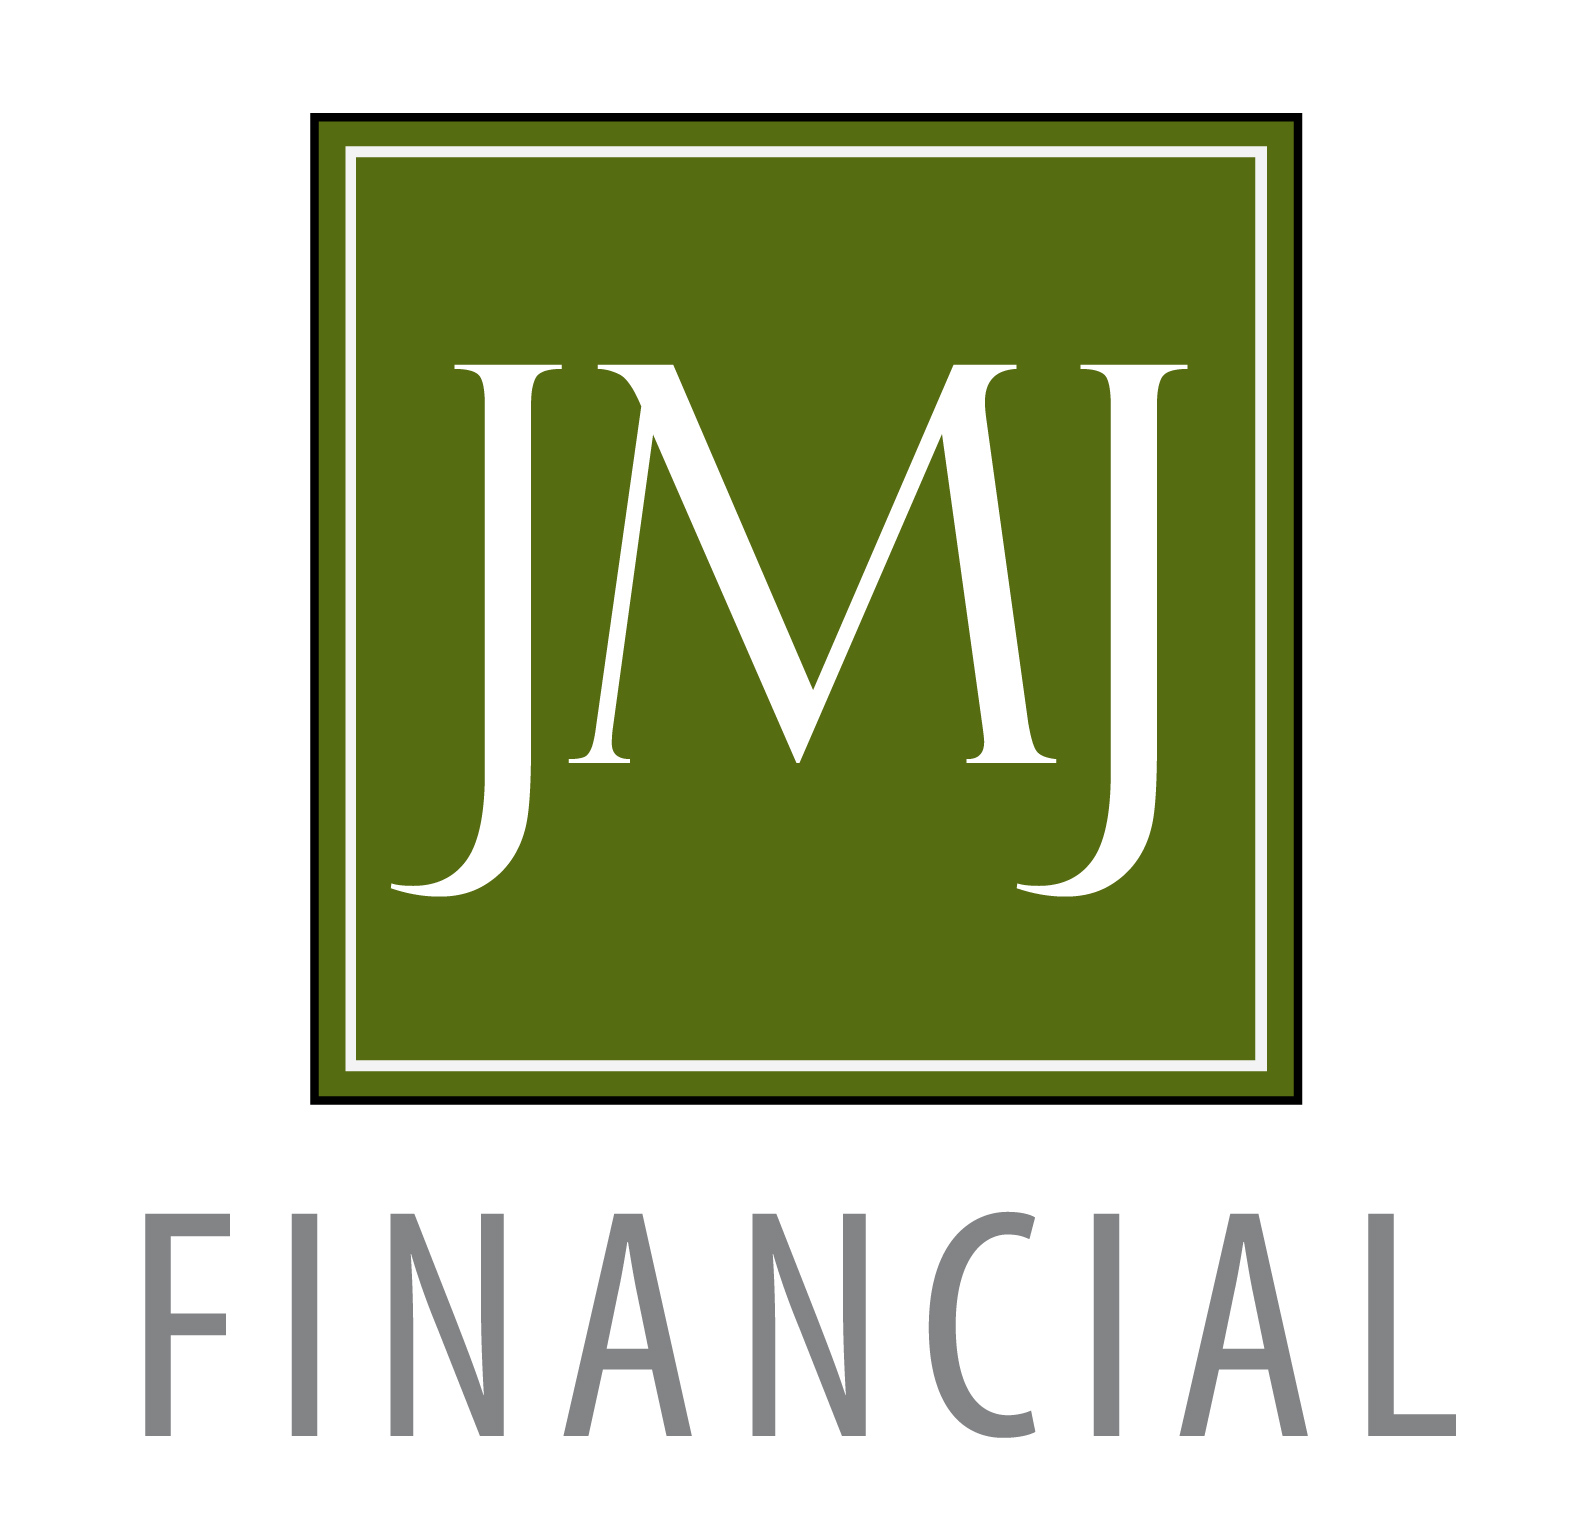 JMJ Financial